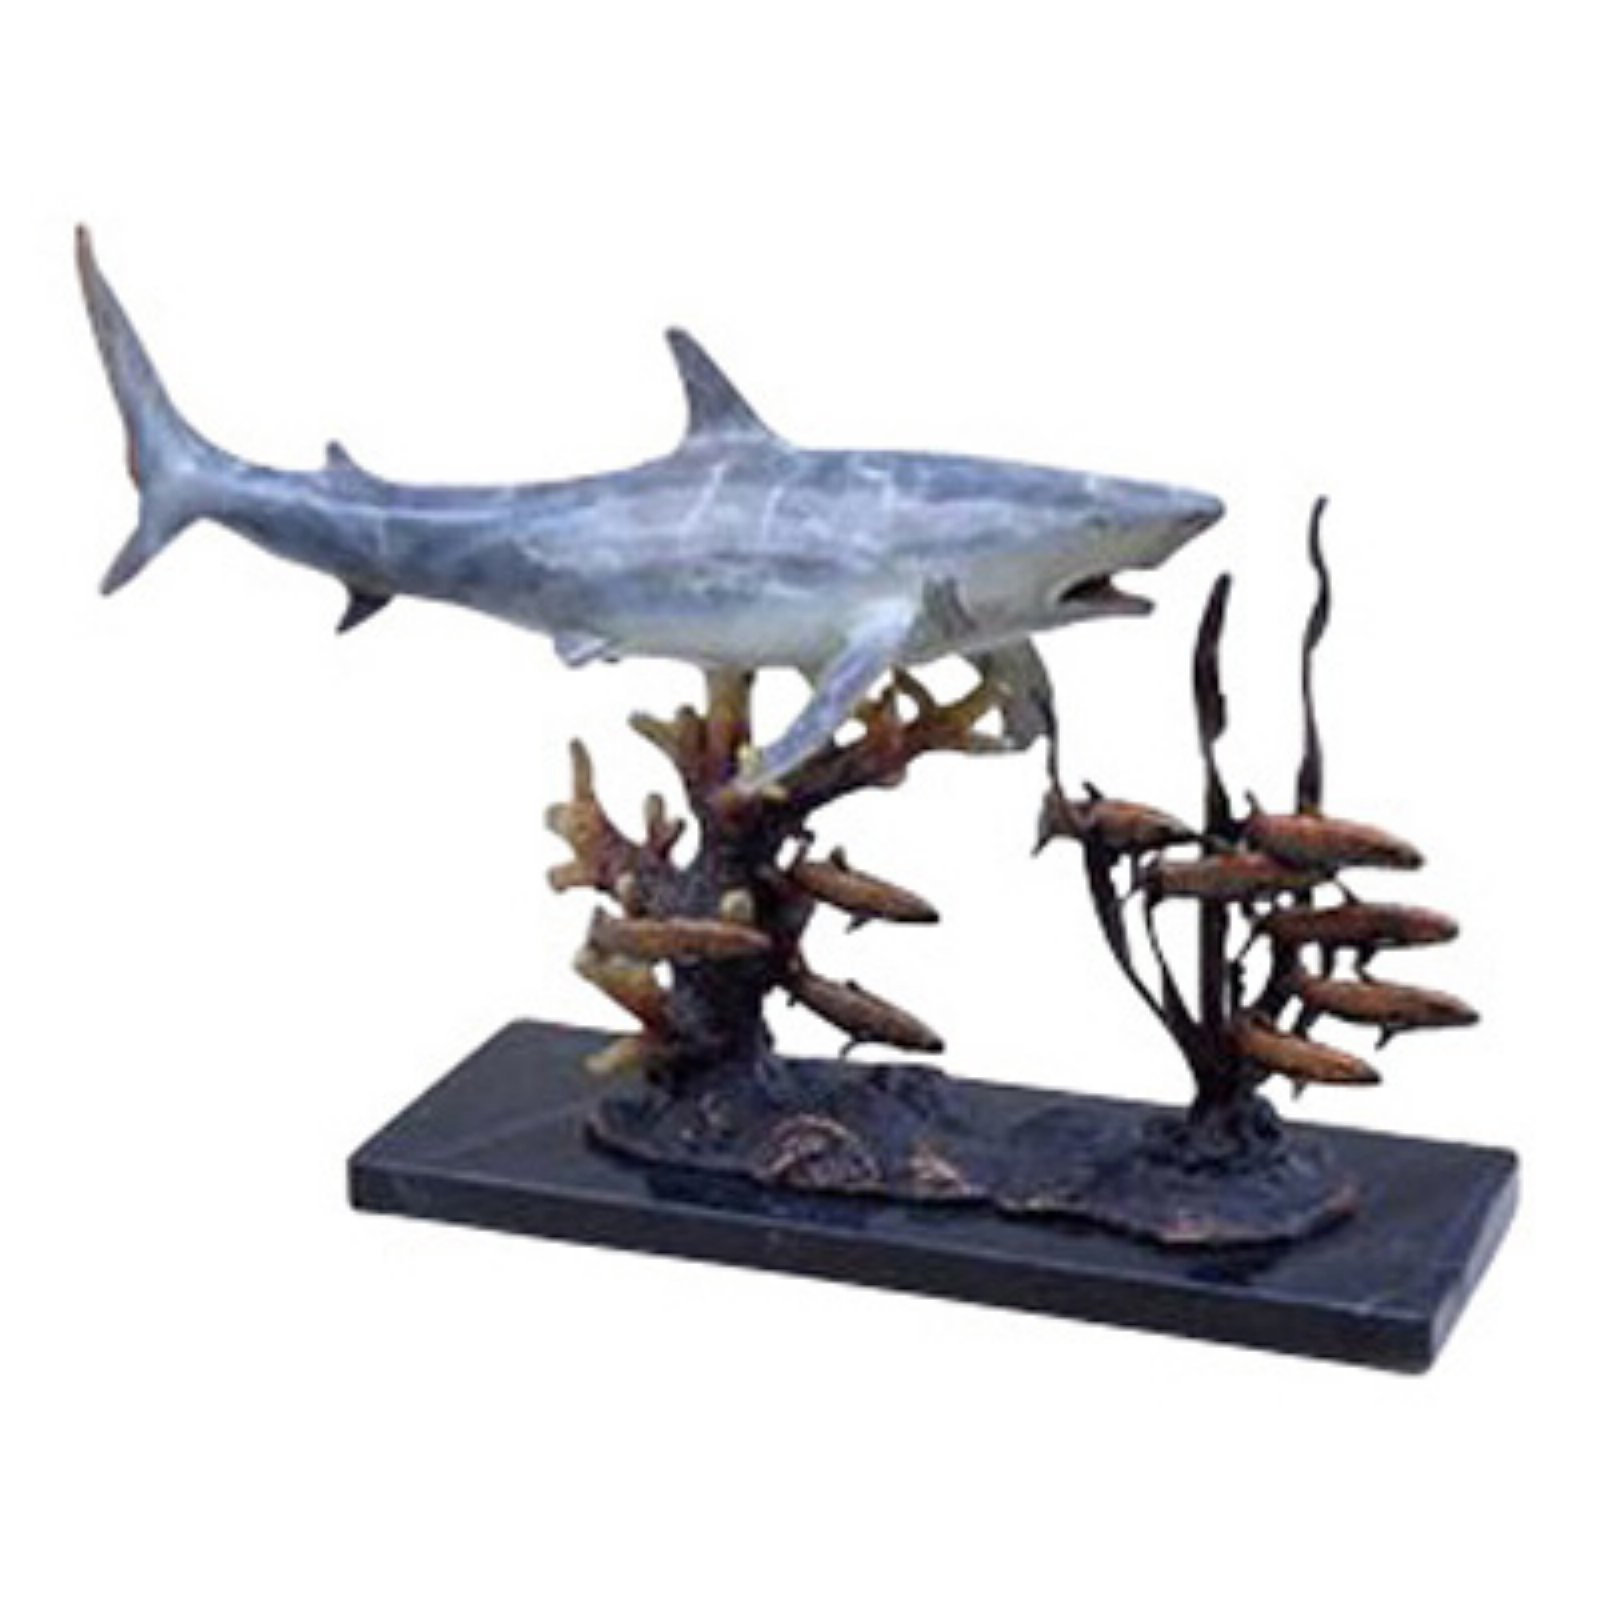 San Pacific International 10H in. Shark with Prey Statue